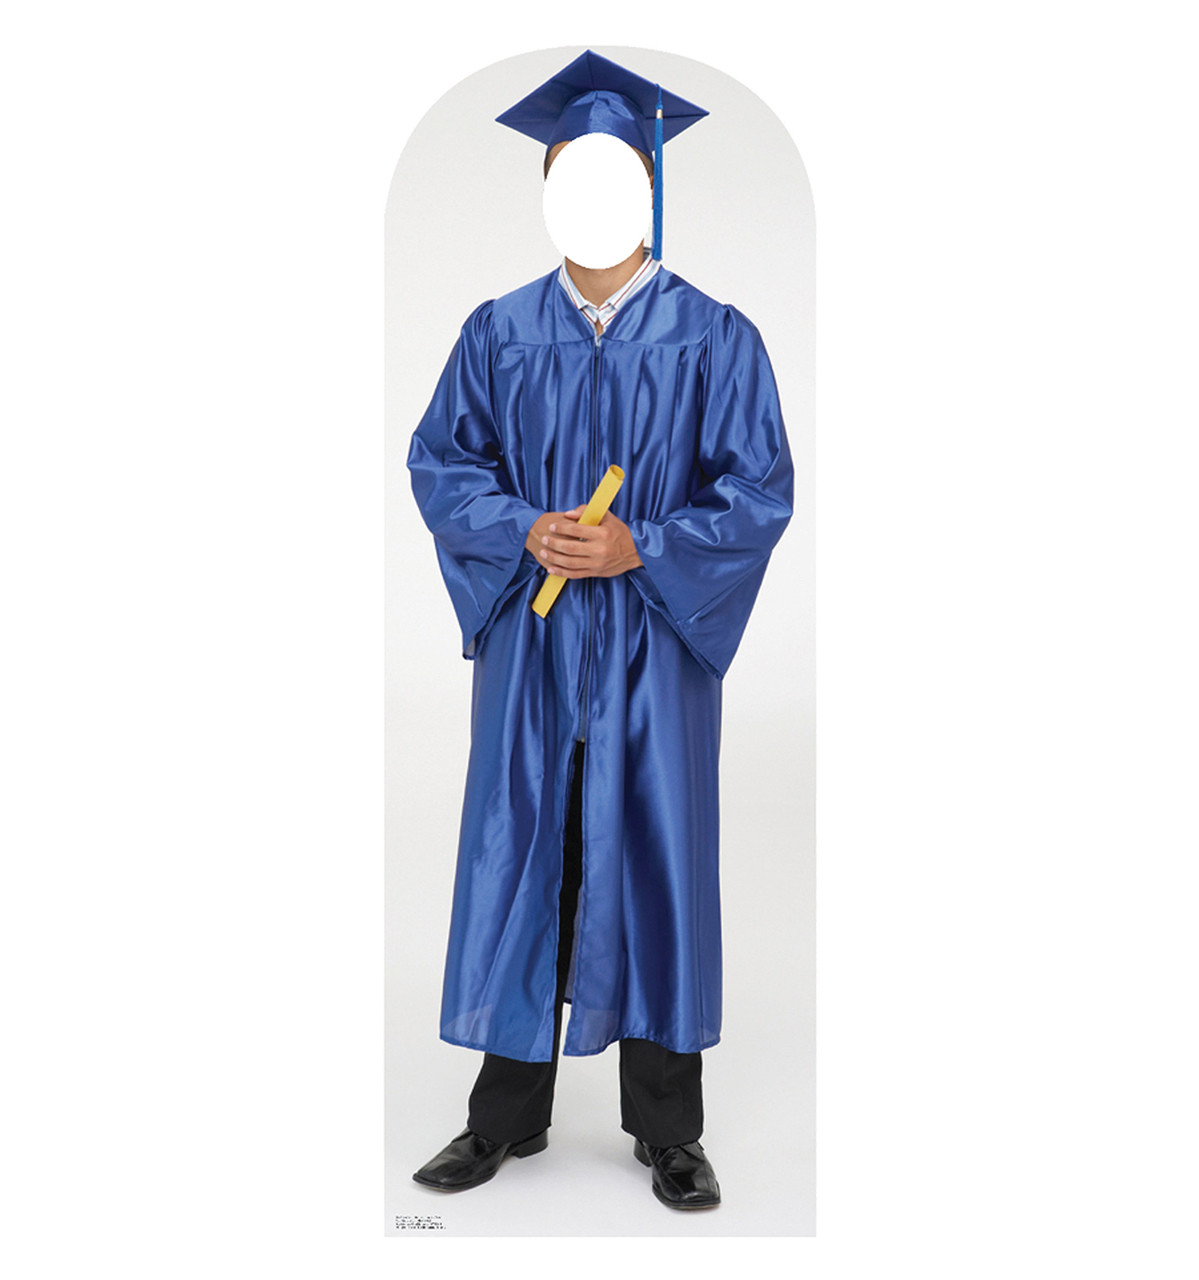 Life-size Male Graduate Blue Cap and Gown Cardboard Standup ...